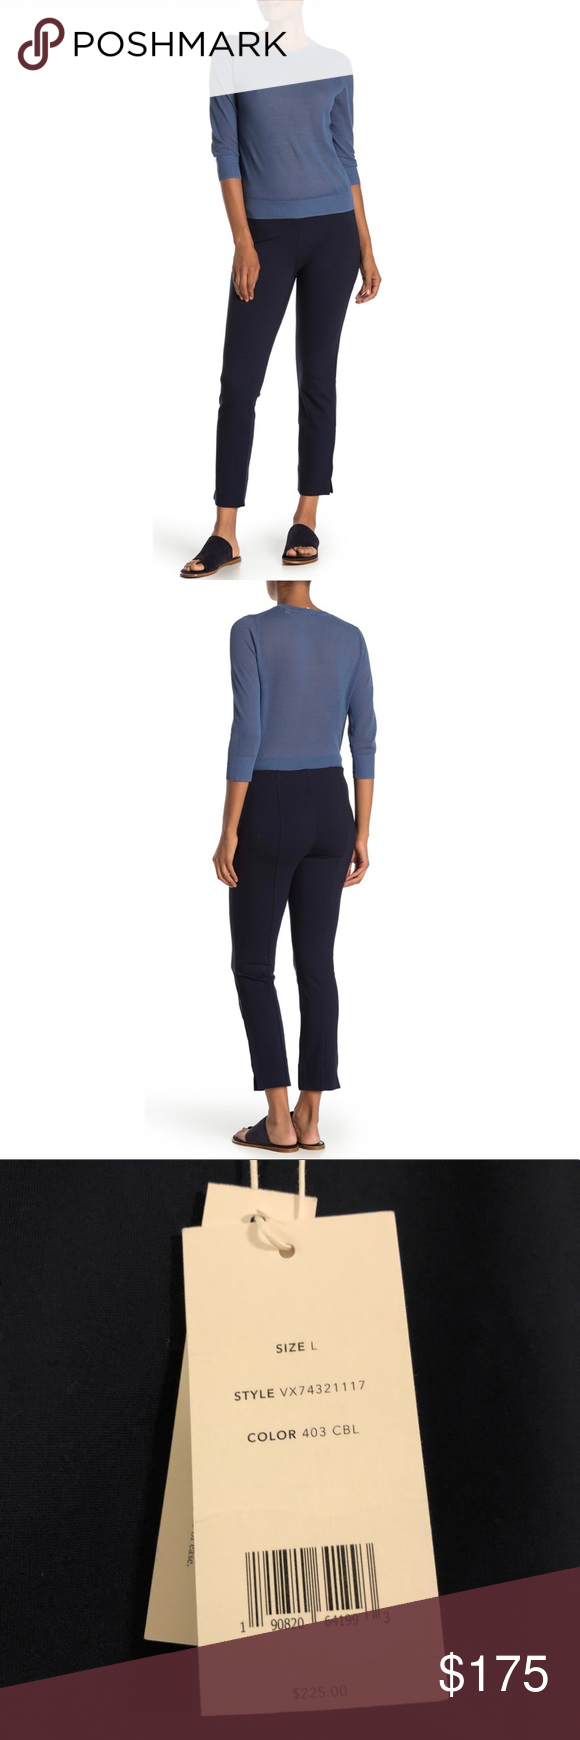 VINCE SOLID PULL-ON SLIM FIT PANTS SIZE L NAVY WOMEN'S VINCE PANTS TROUSERS PULL-ON SLIMMING SIZE L BLUE  Solid, slim fit trousers with an easy, pull on design add effortless comfort and flattering style.  MSRP $ 225.00  Fits true to size.  Features: - Pull on style - Elasticized waist  - Slim fit - Solid color - Stretch knit construction  - vented hems   📦  #001  Vince pants leggings size L Blue Navy Vince Pants